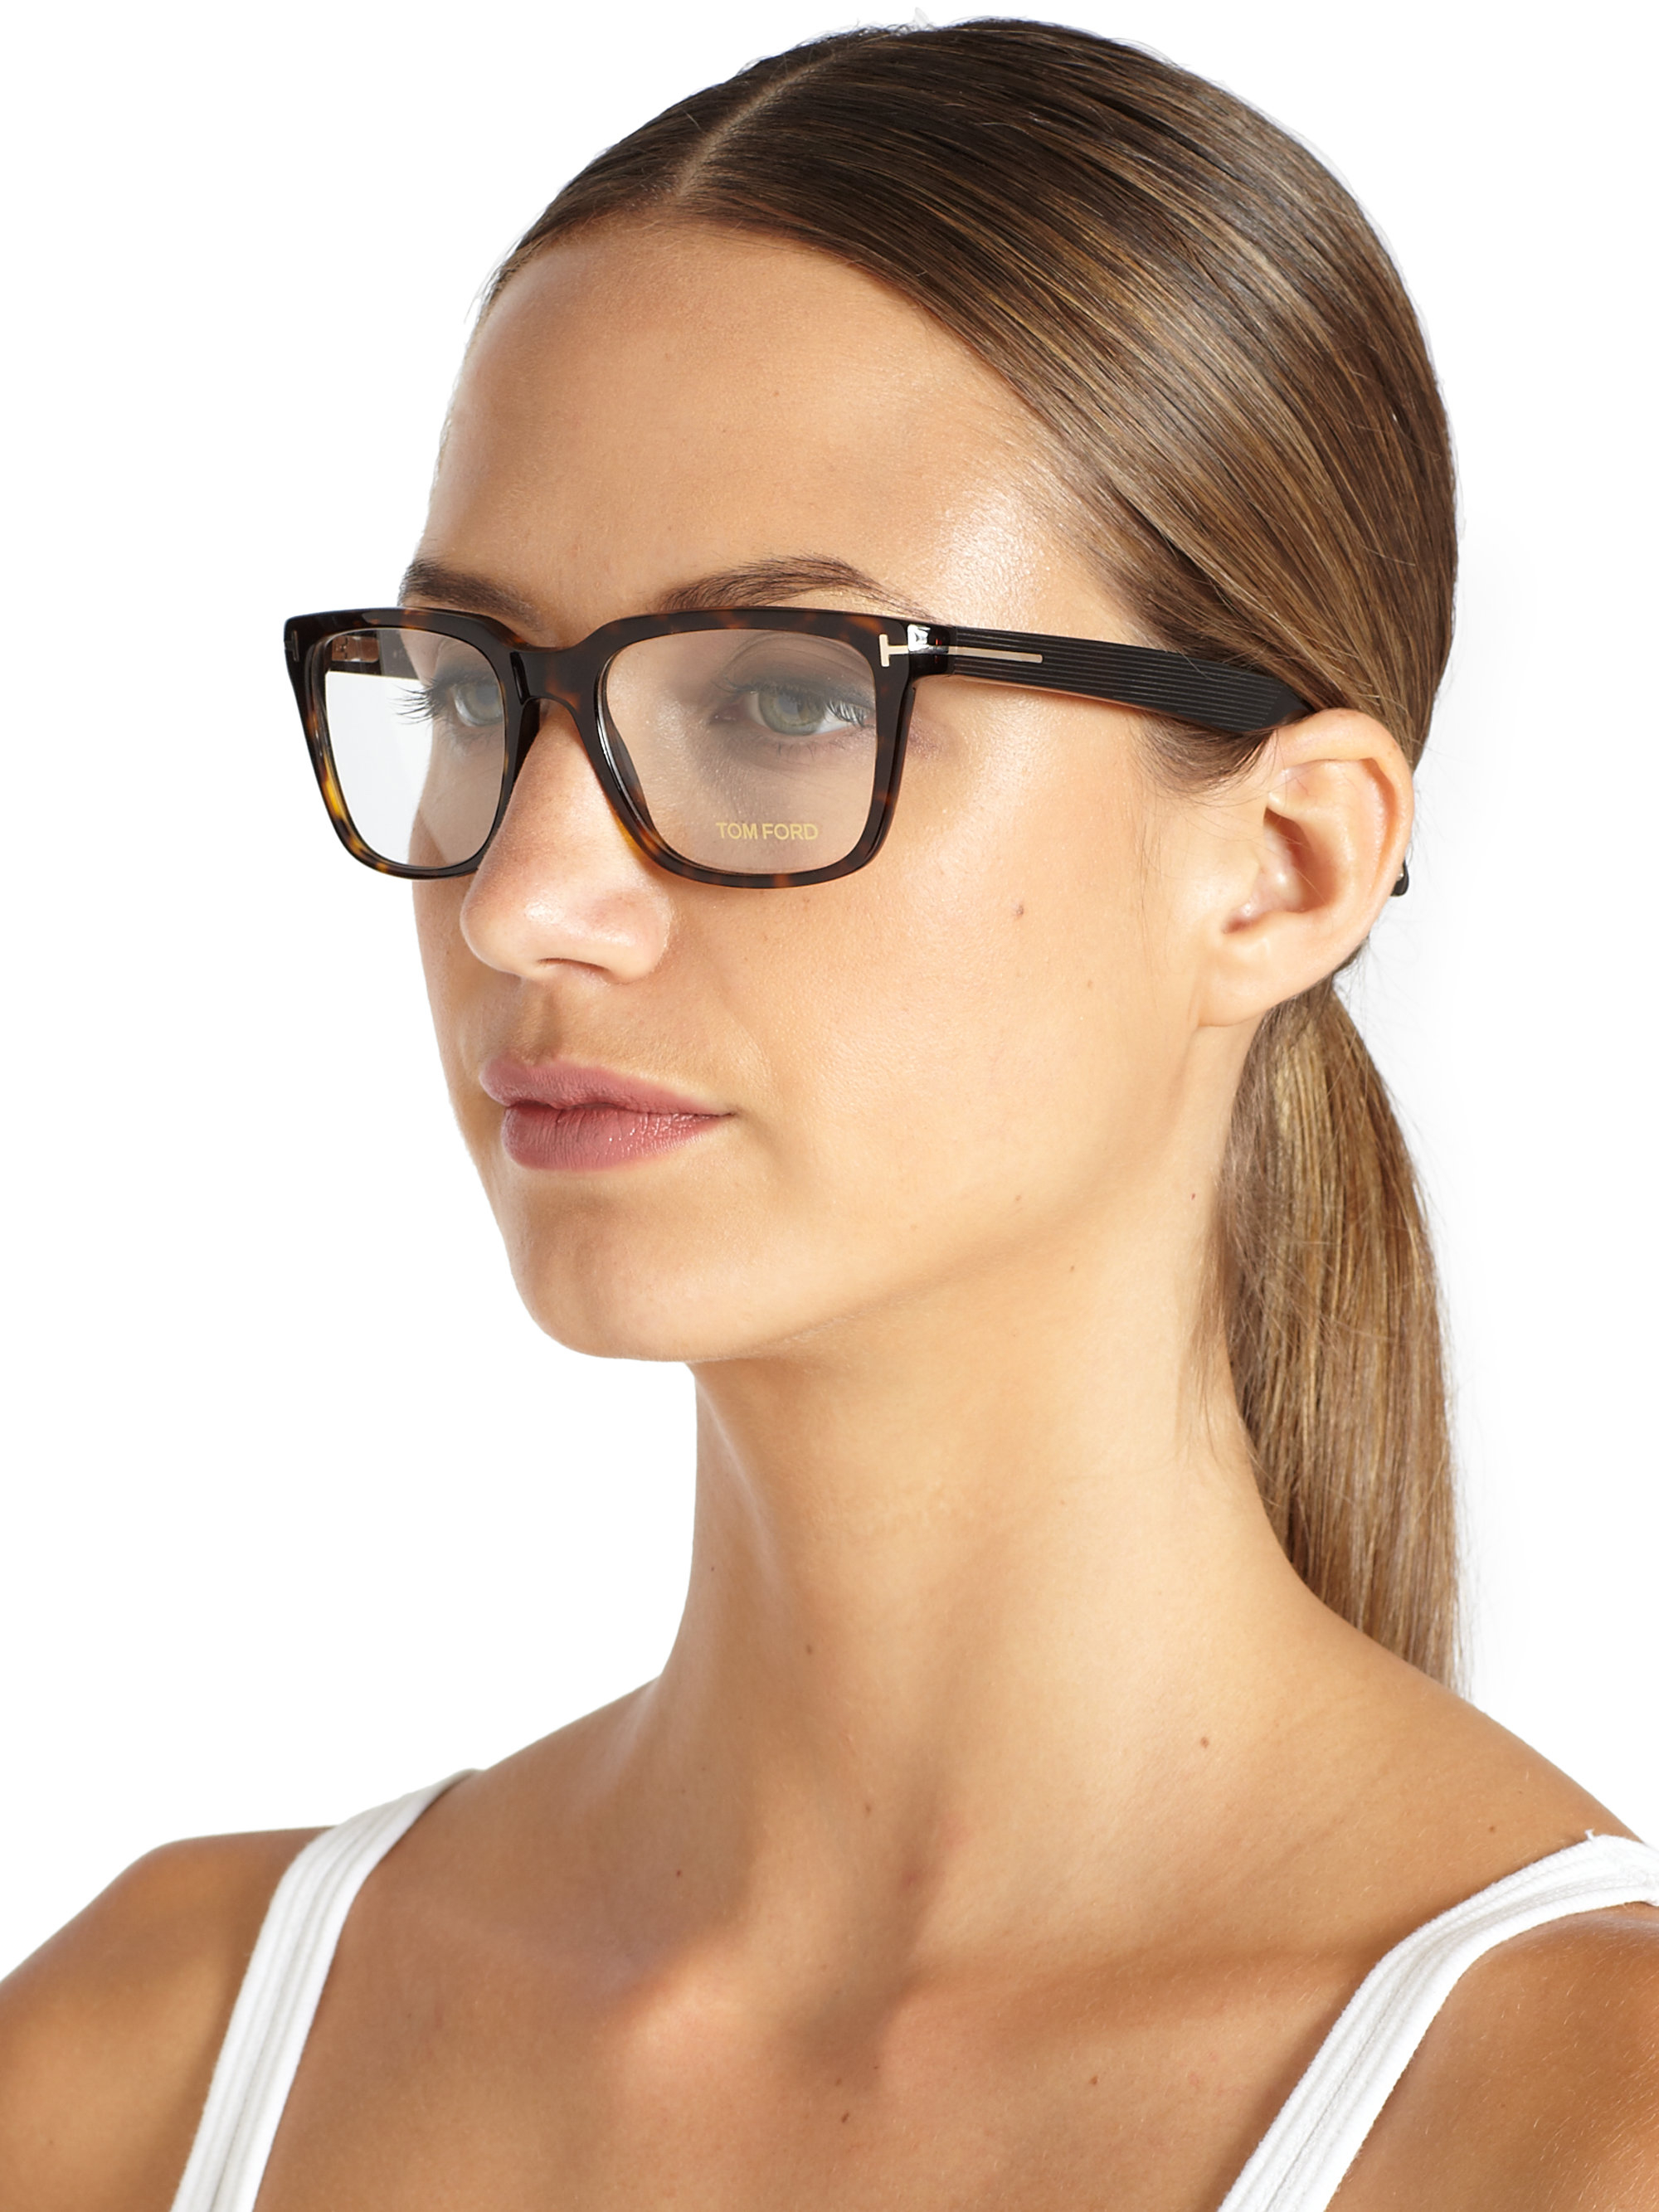 c1f3ab6d75 Lyst - Tom Ford Square Optical Glasses in Brown for Men